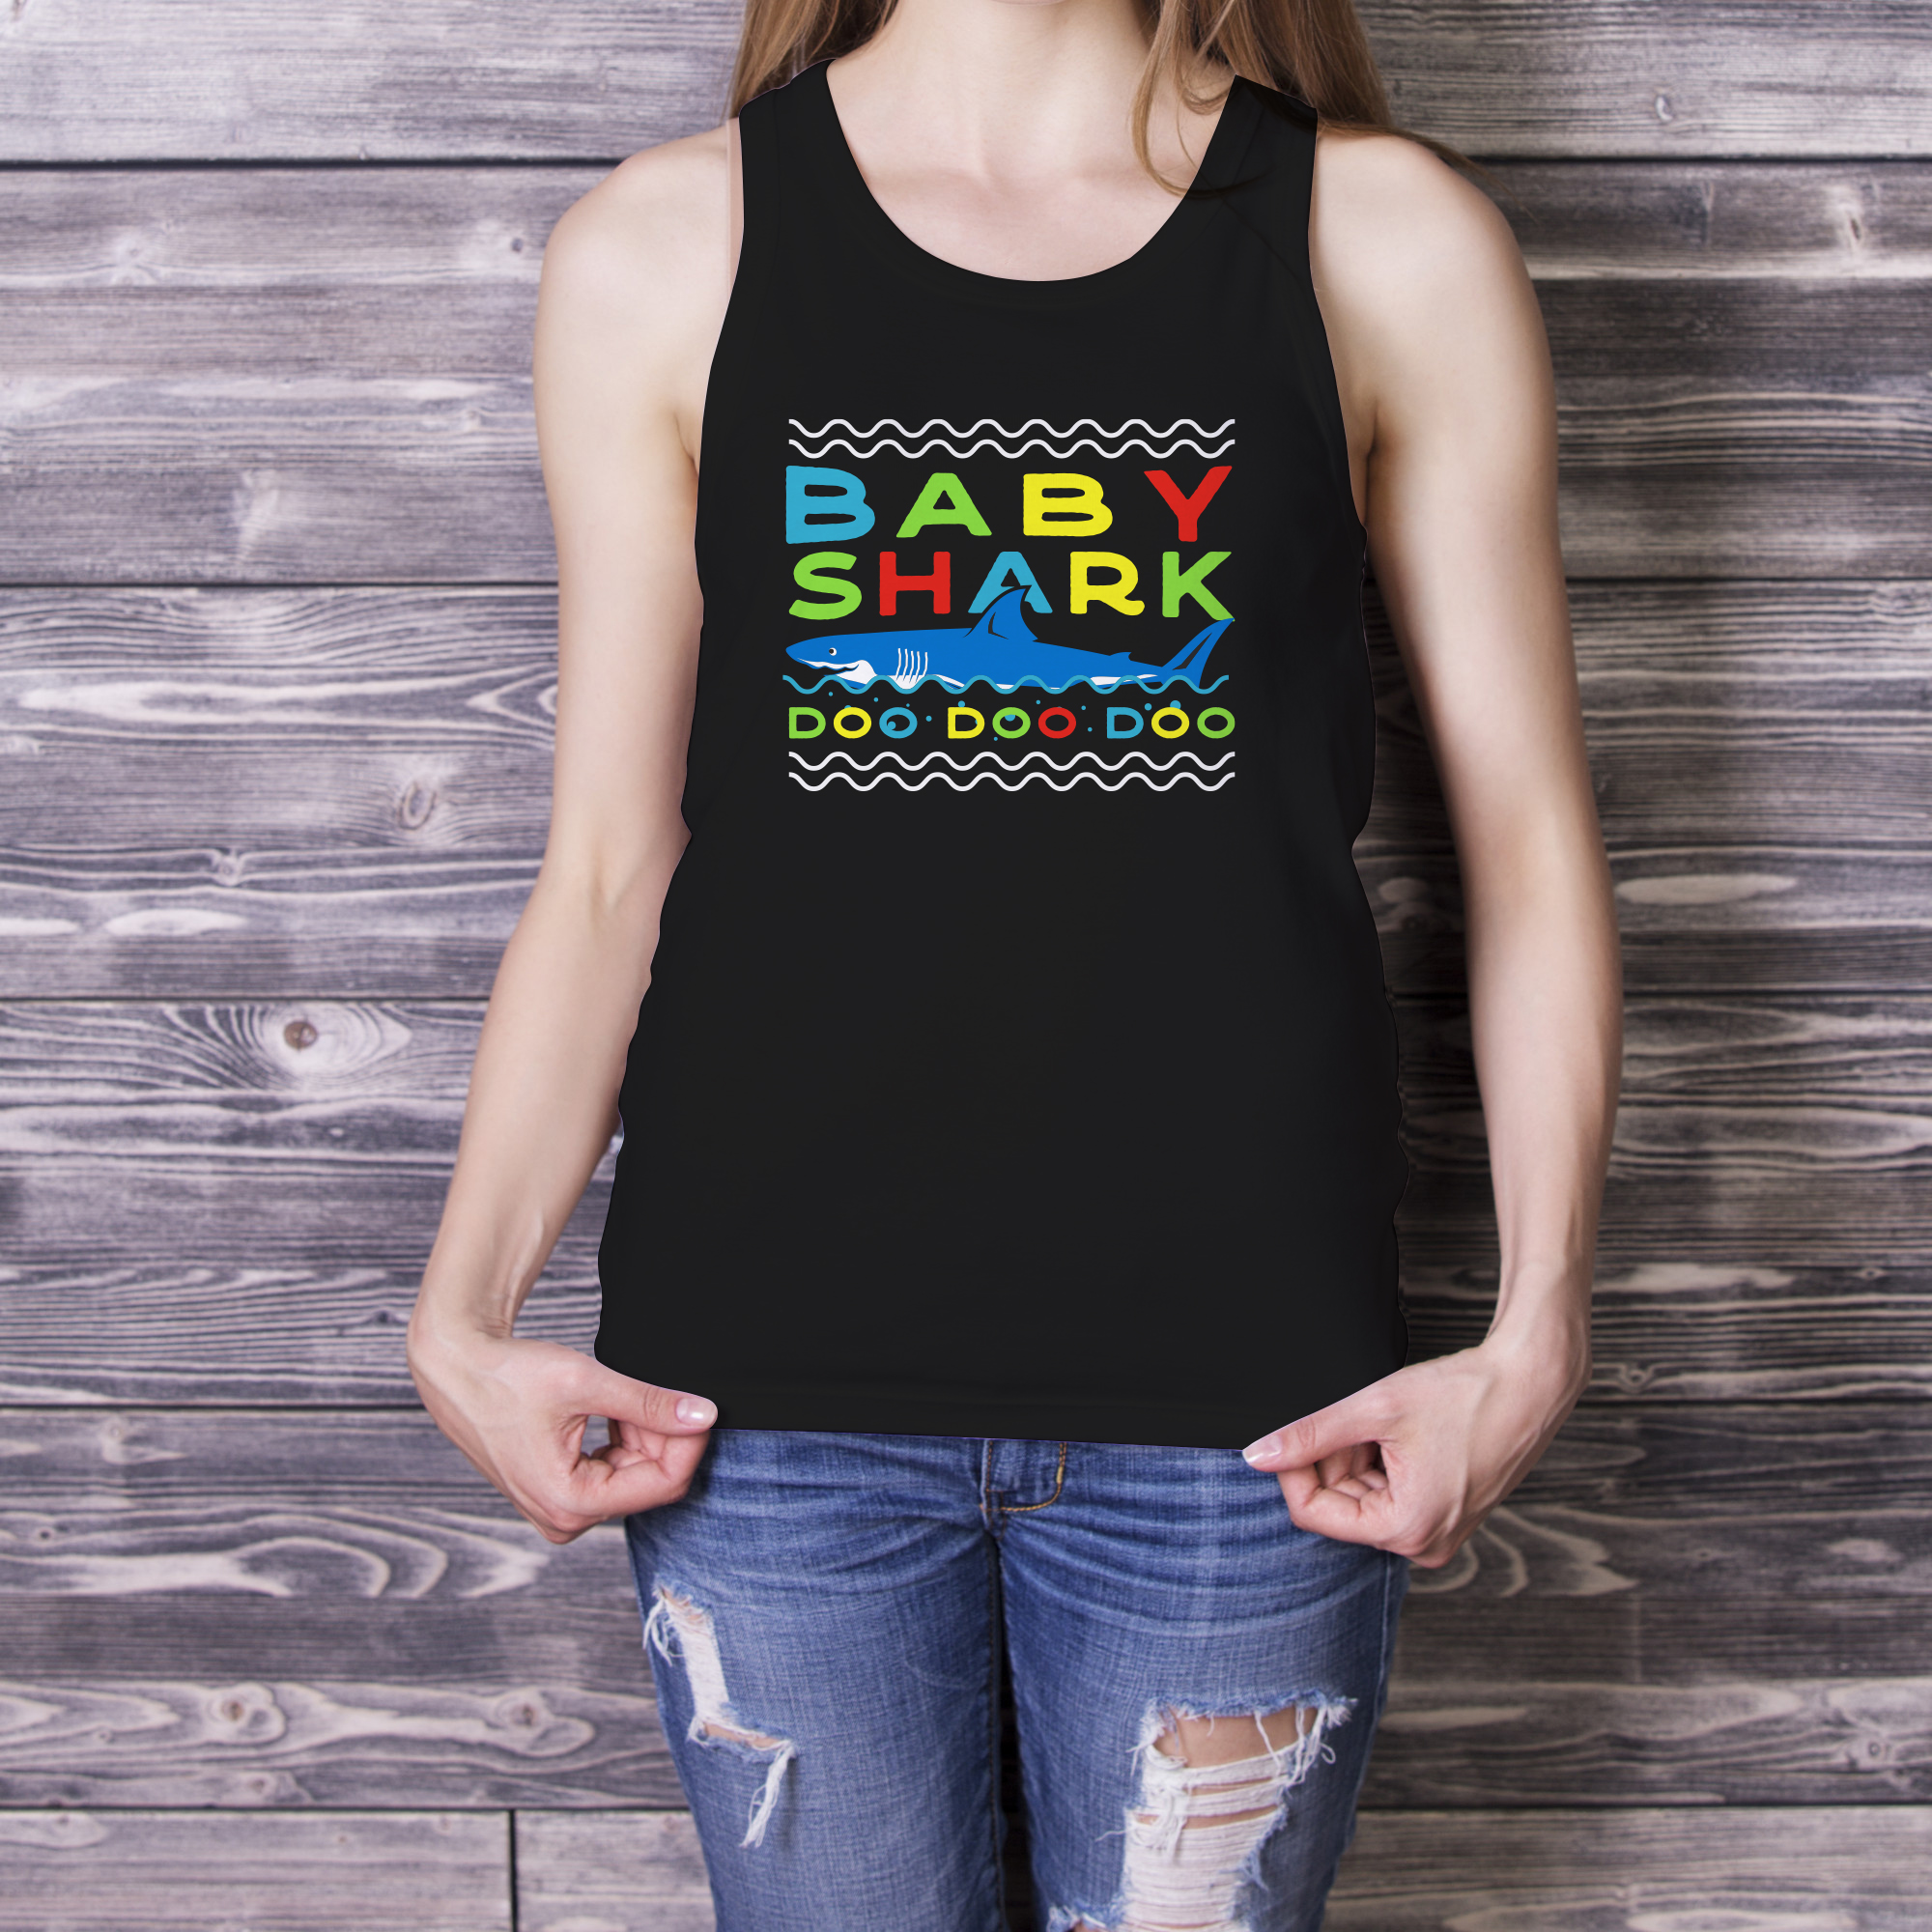 Retro Daddy Shark Print / Fathers Day T-Shirt, Family SVG example image 5